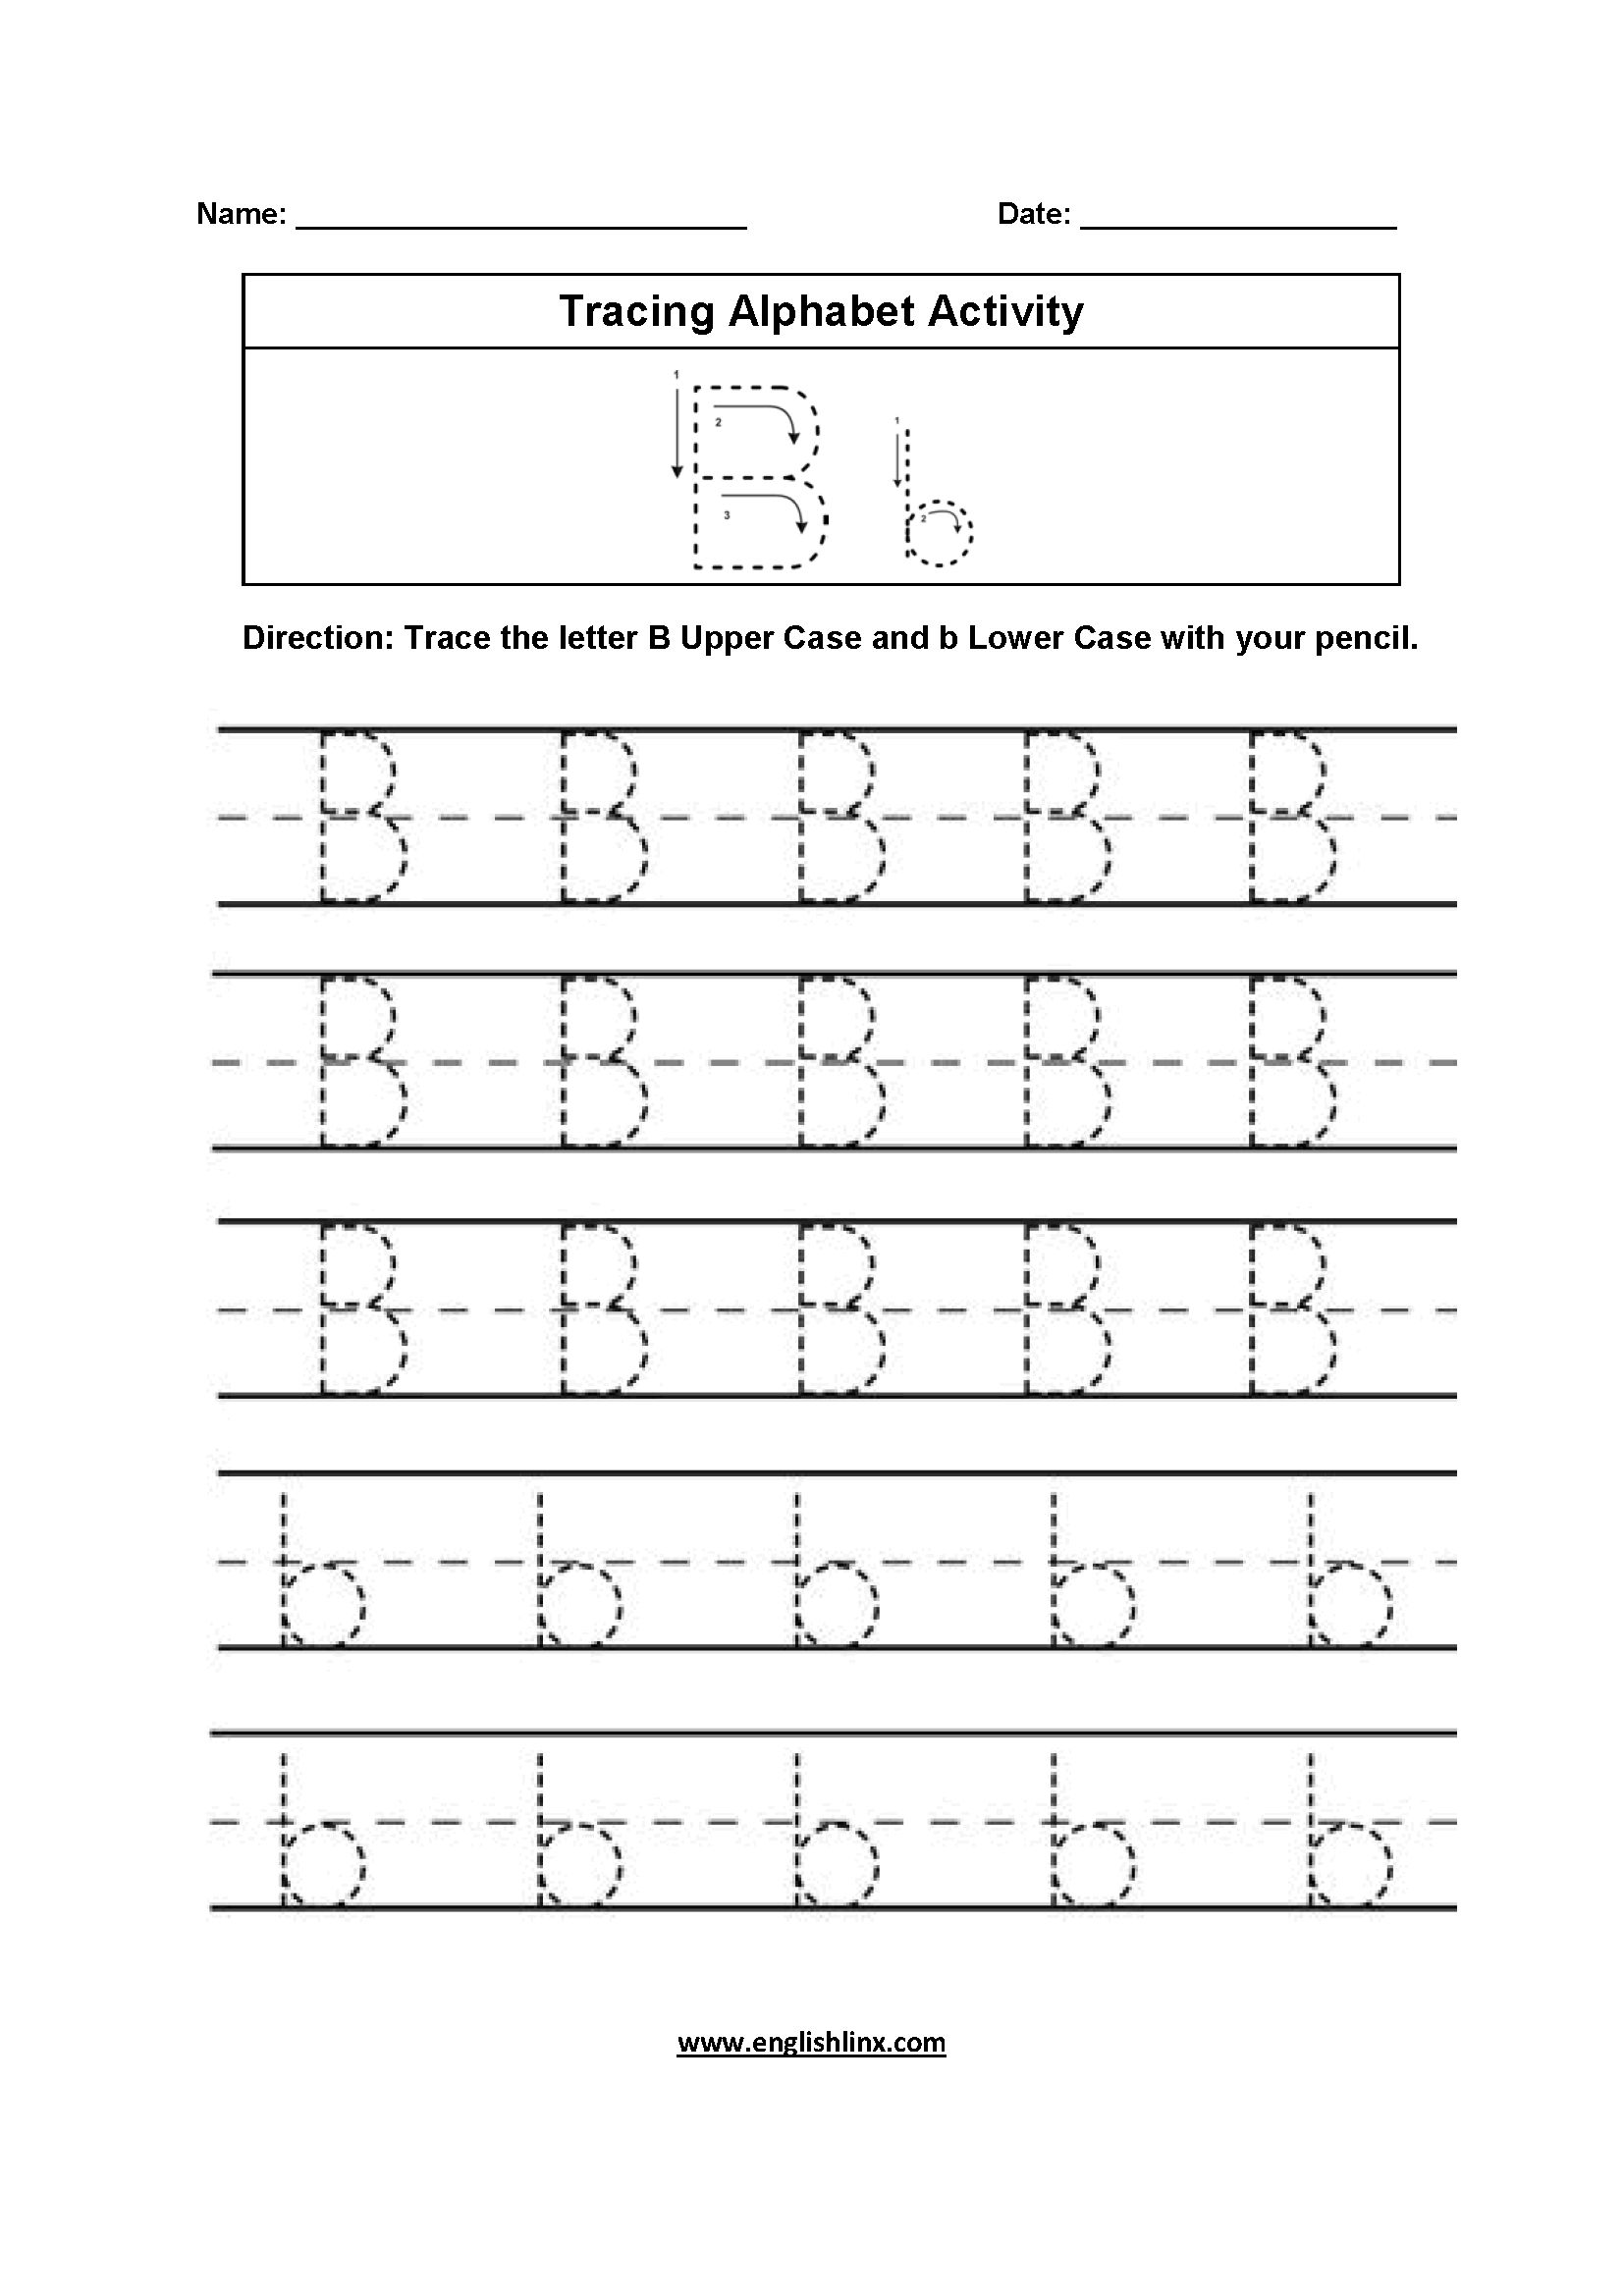 5 Alphabet For Kids To Trace Worksheet In 2020 Alphabet Worksheets Alphabet Practice Worksheets Alphabet Tracing Worksheets